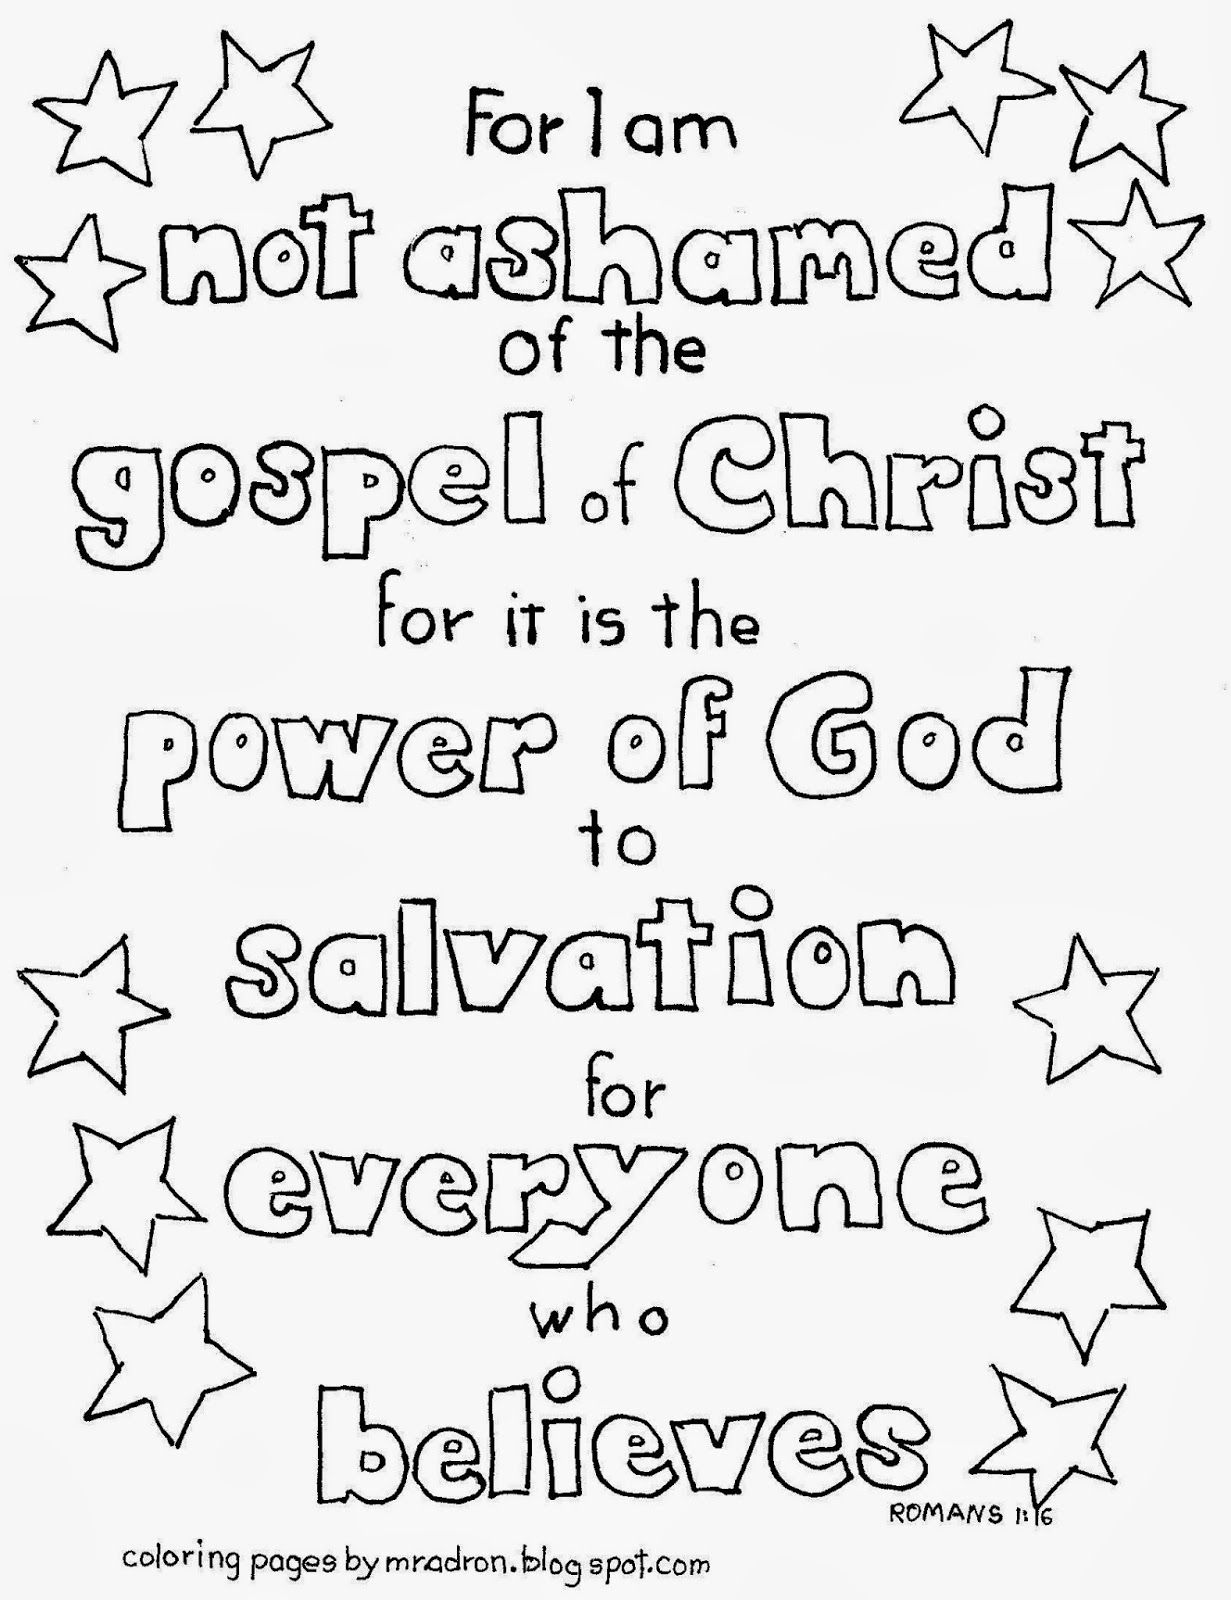 Romans 1 16 Coloring Page See More At My Blog